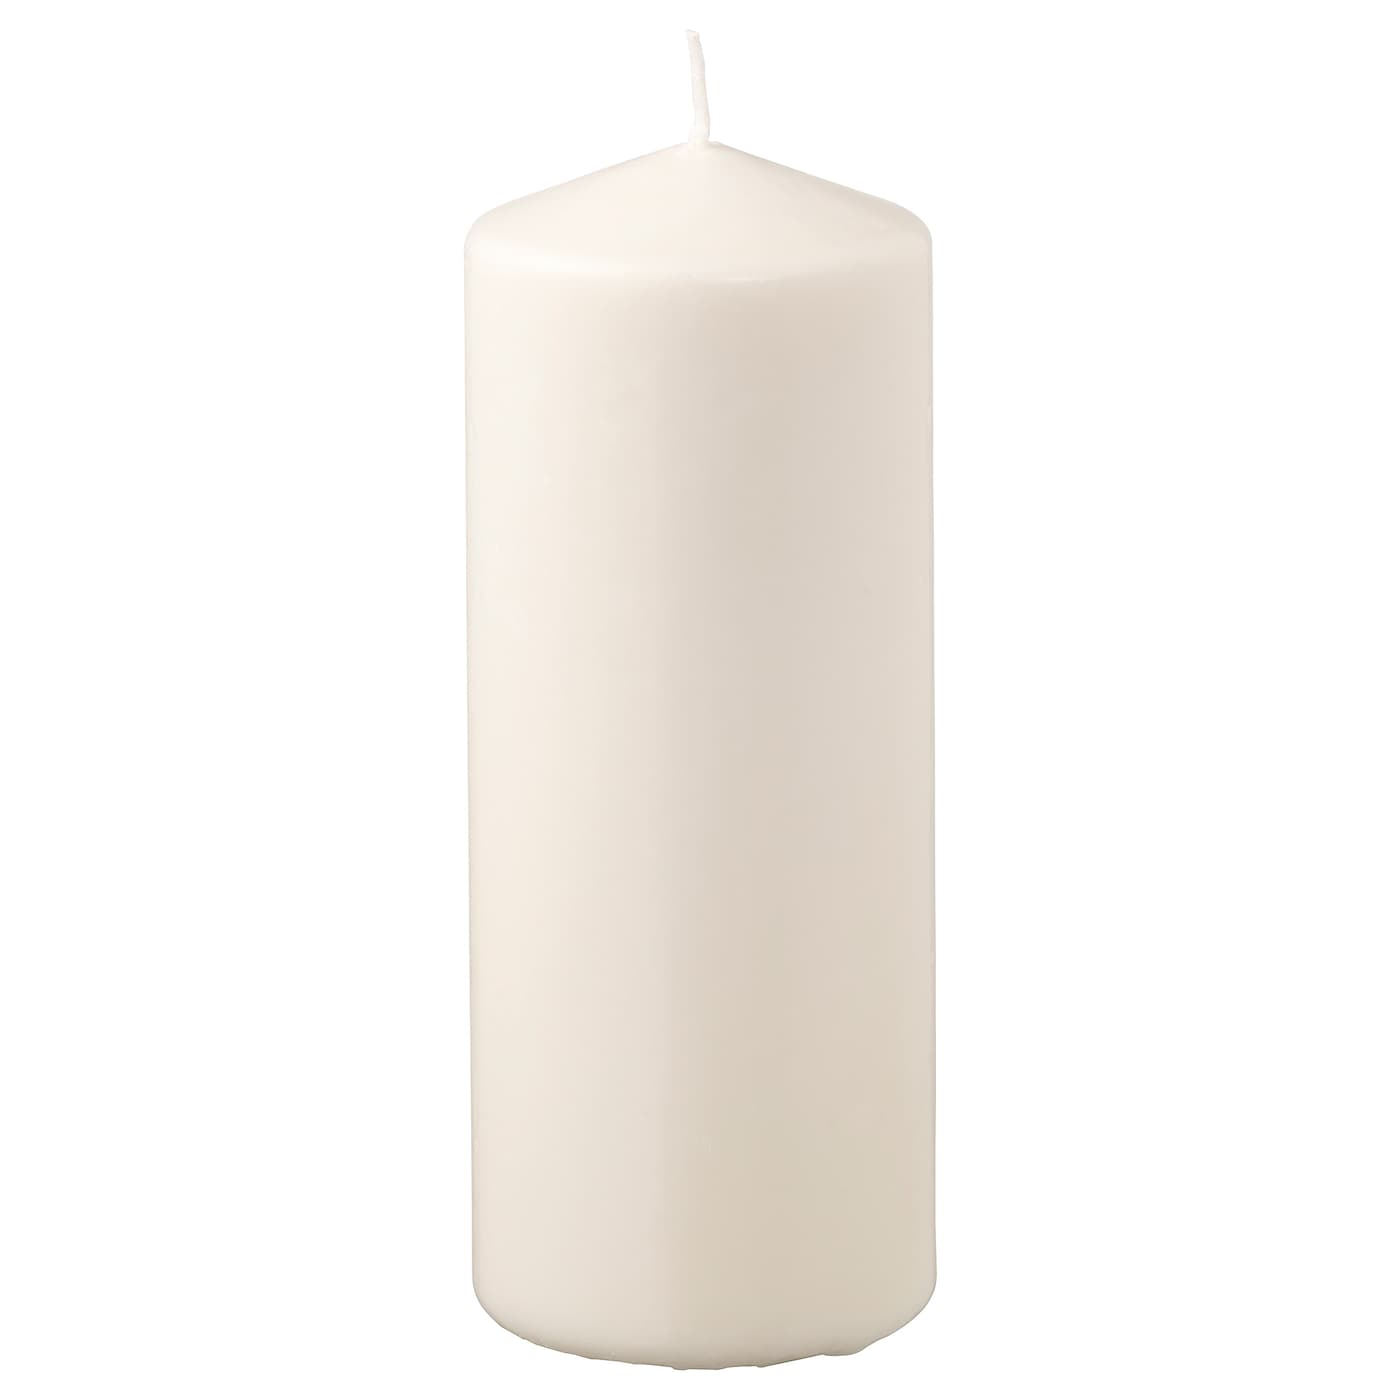 IKEA FENOMEN unscented block candle